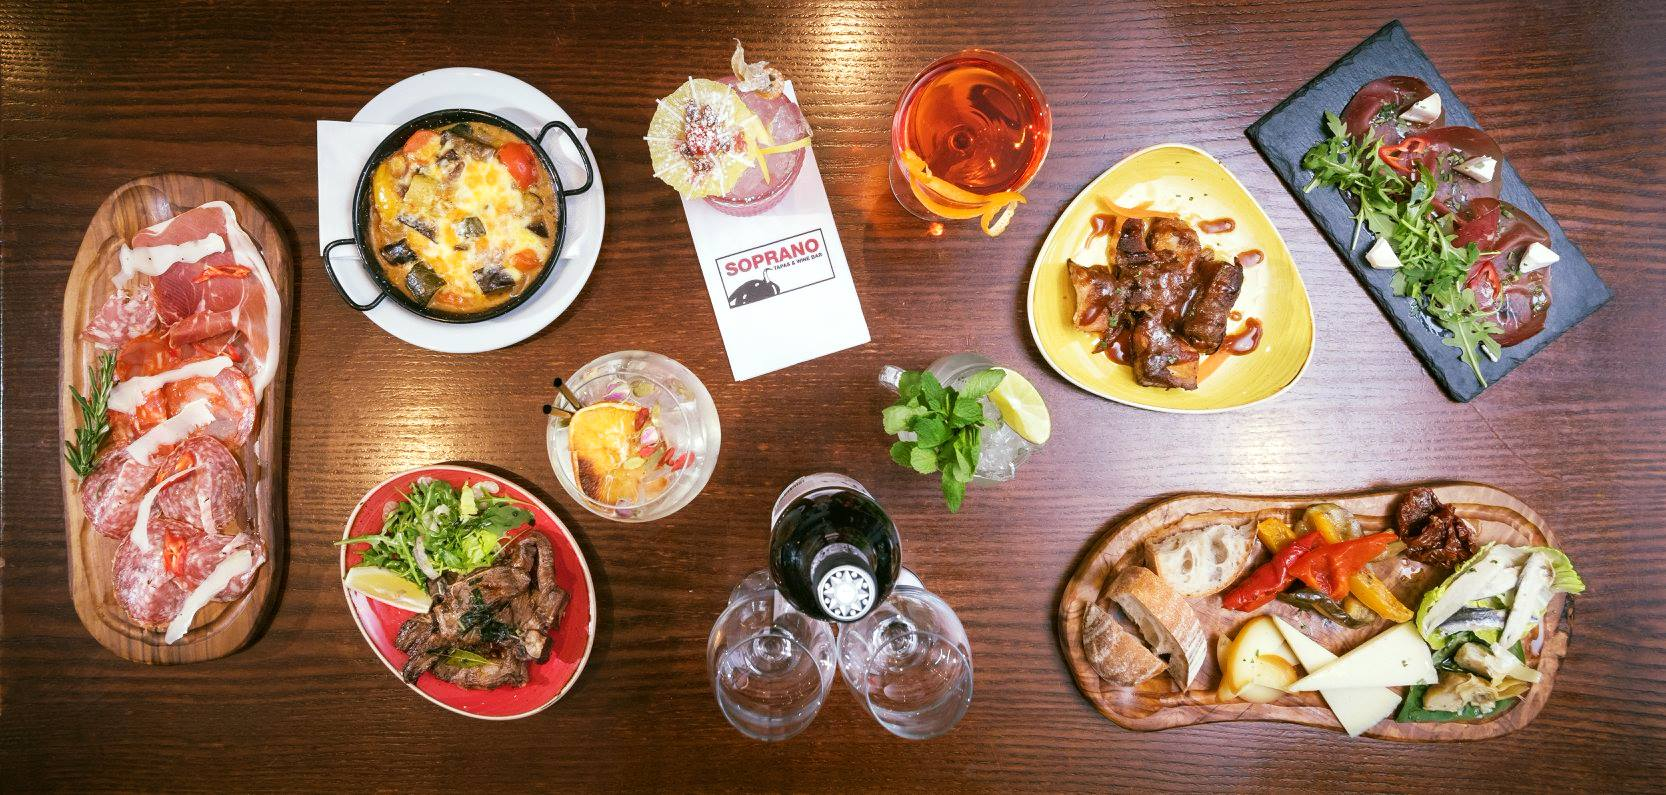 Soprano's tapas and wine bar, Royal Tunbridge Wells